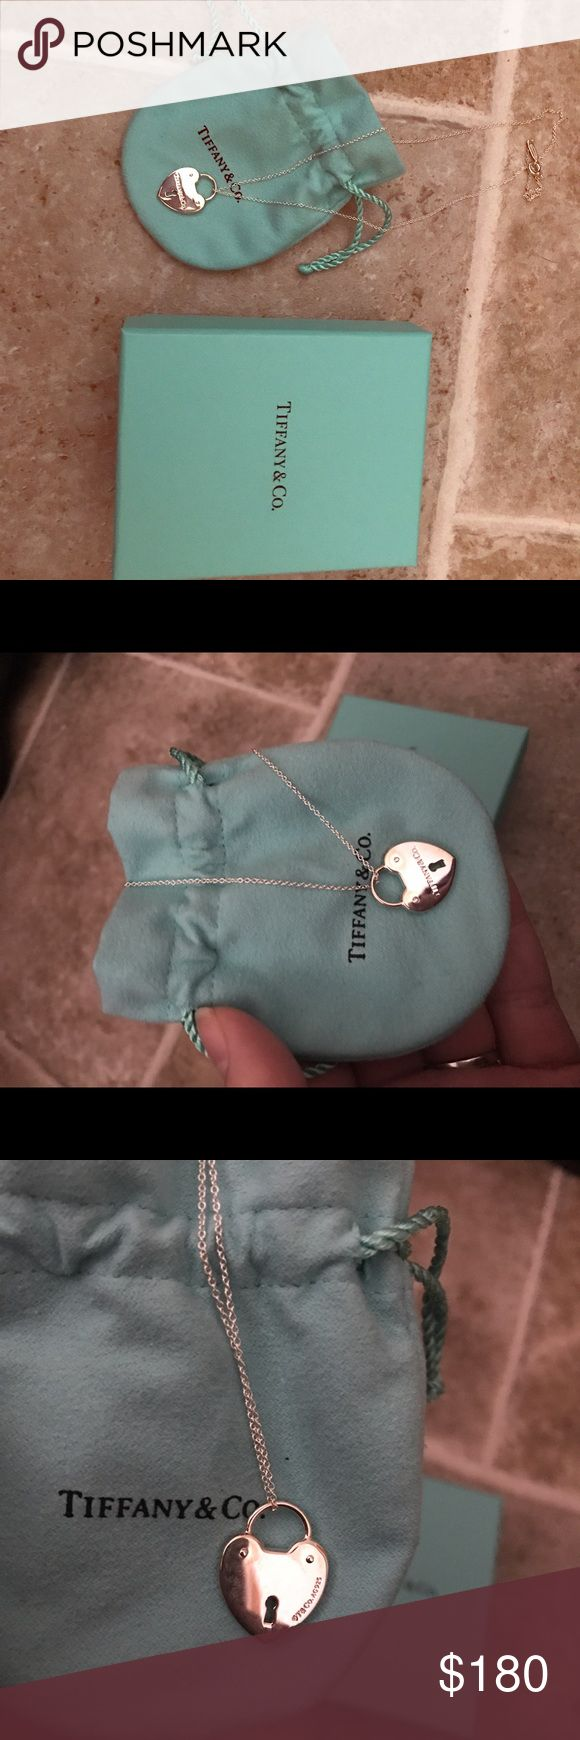 Tiffany and Co heart locket pendent Brand new, never worn Tiffany and Co necklace. Necklace is a sterling silver heart locket pendent with a matching 18in sterling silver chain. Comes with dust bag and box! Price asking is $180 or best offer! So make an offer I'm open to anything! Tiffany & Co. Jewelry Necklaces